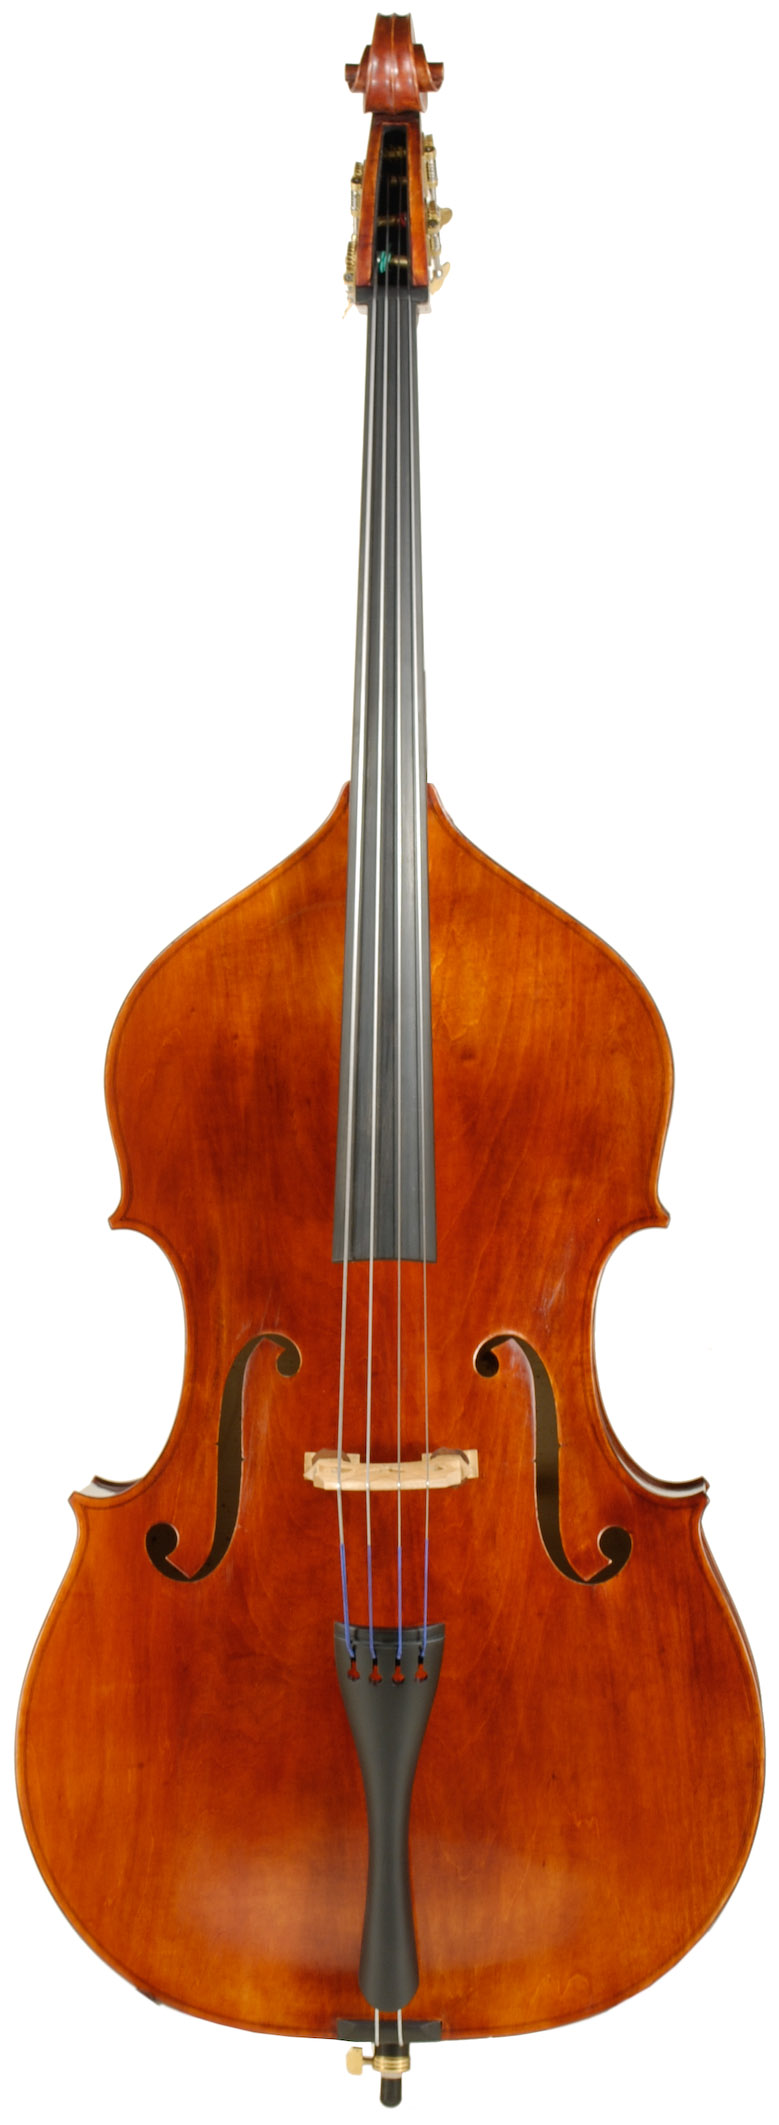 Samuel Shen Model 88 Laminated Oil Finish Top